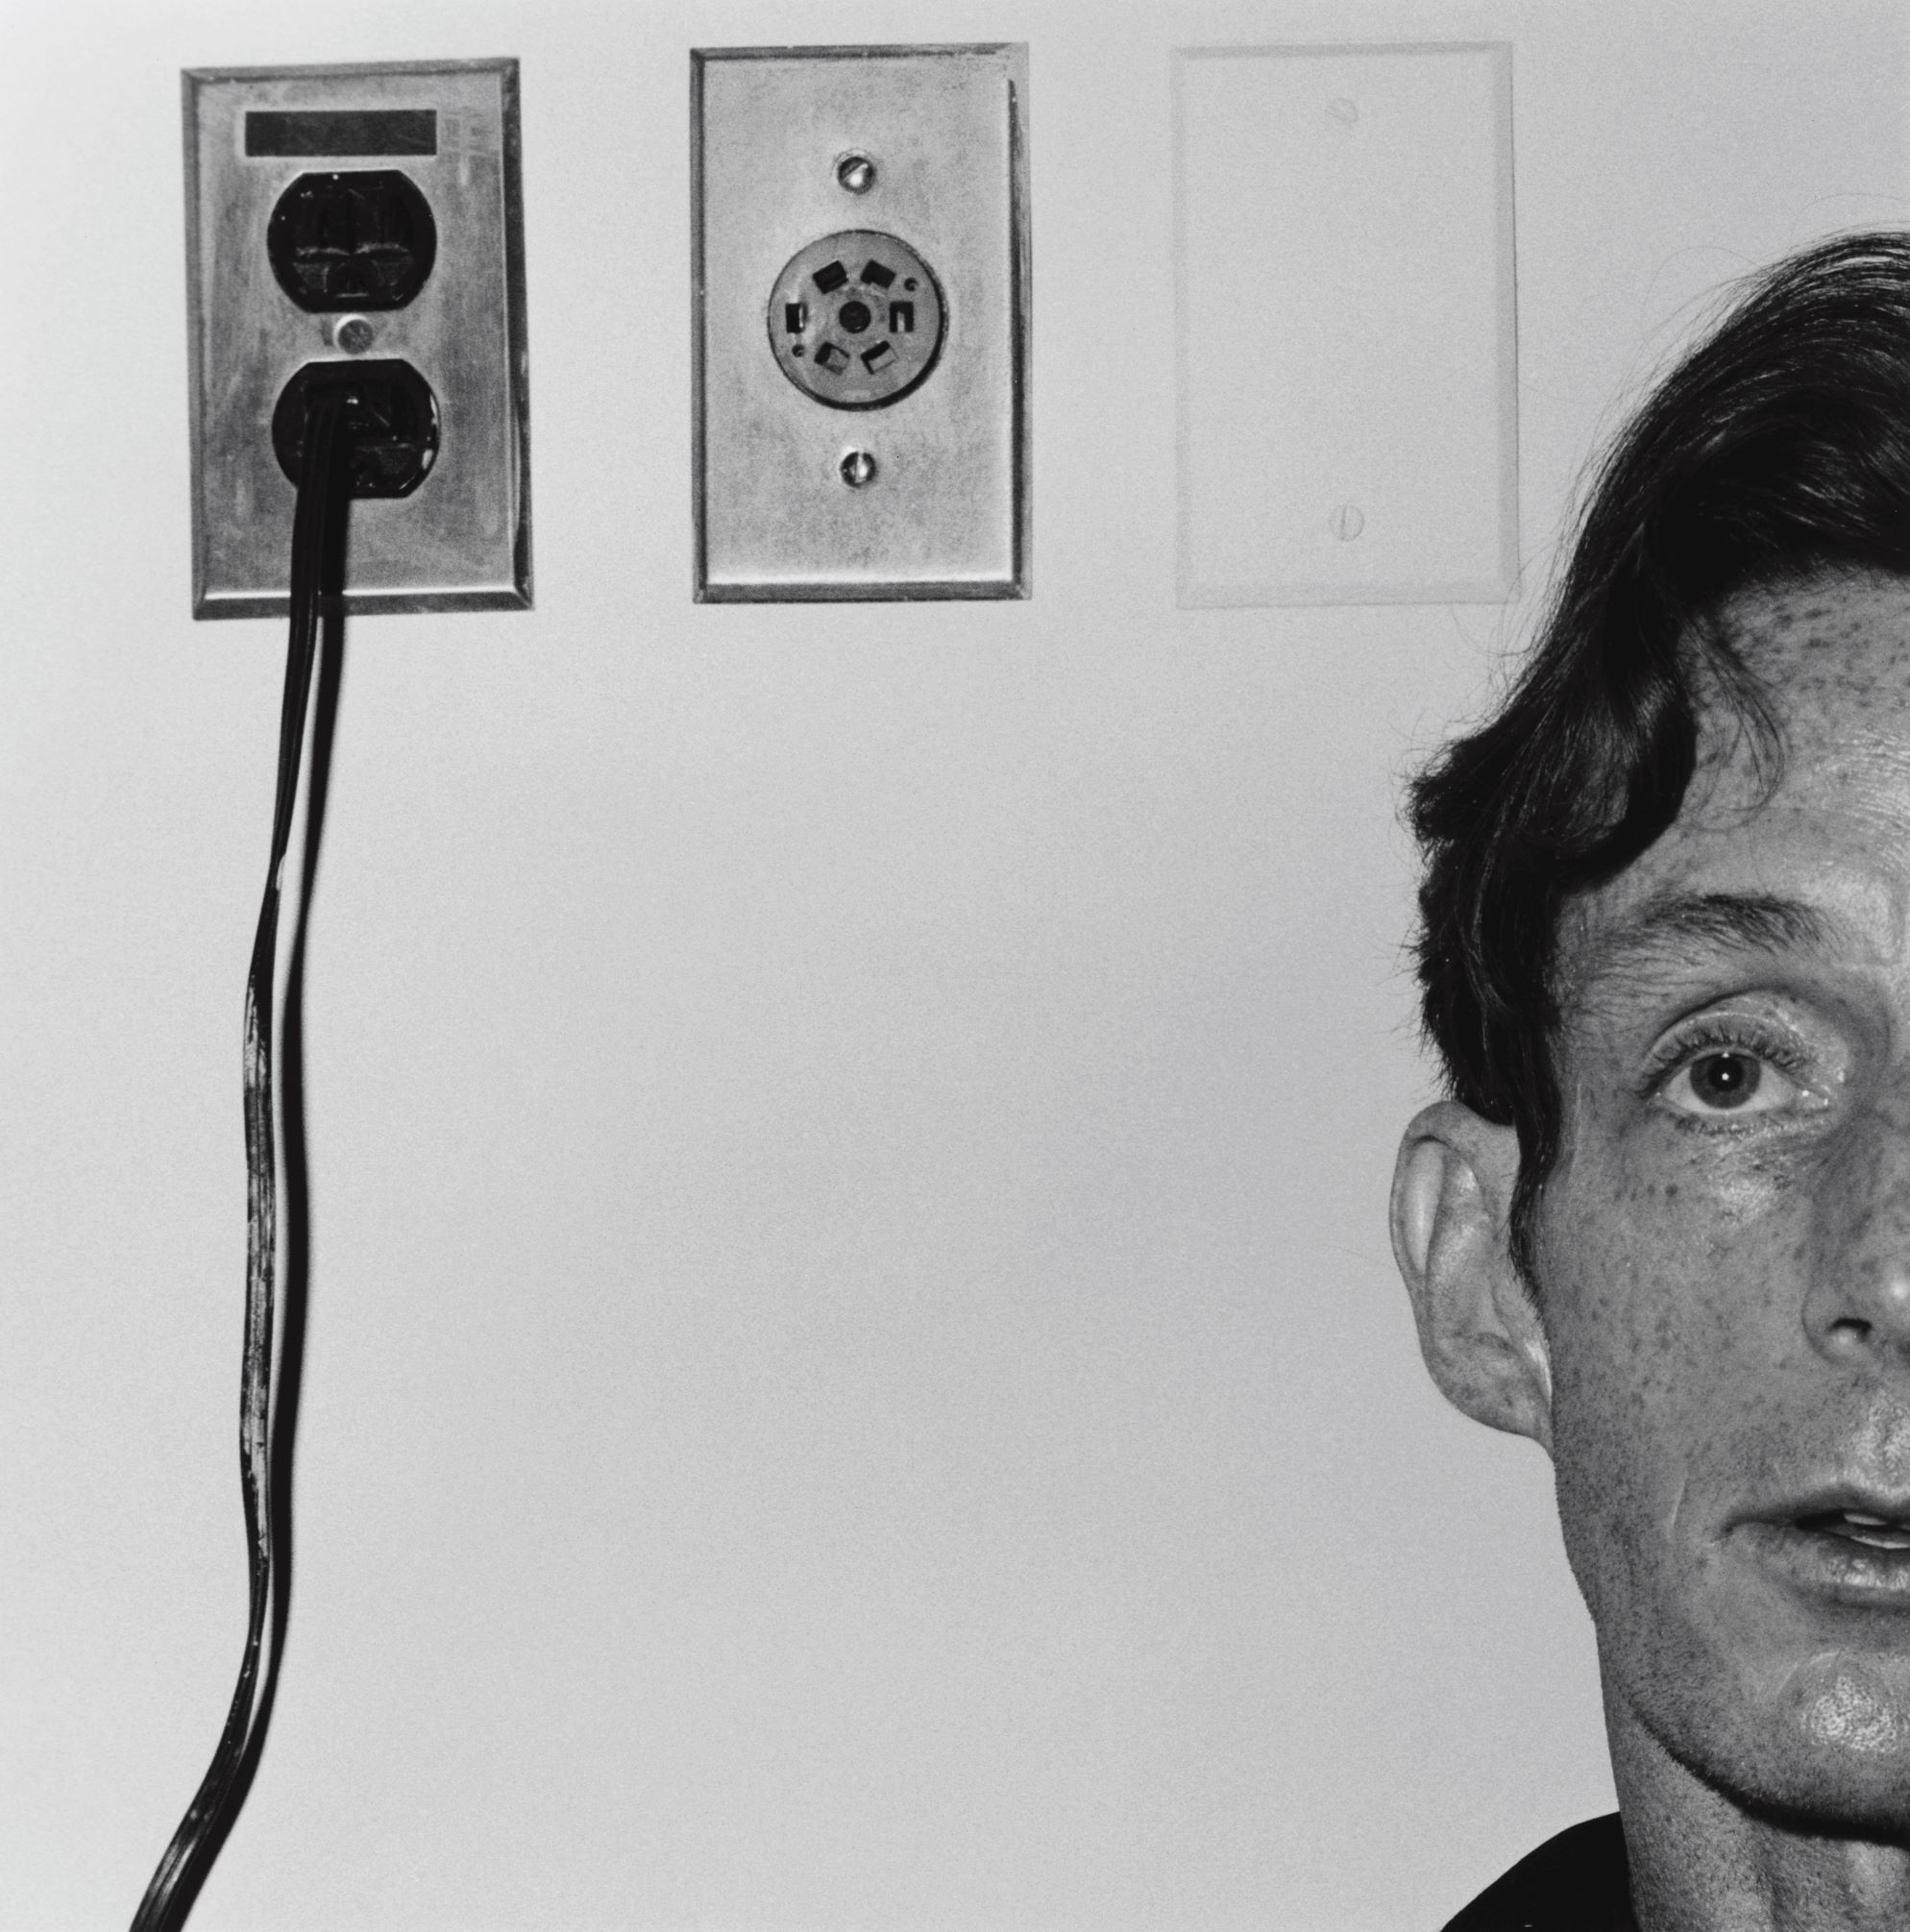 Robert Mapplethorpe: John McKendry, 1975. All photographs (c) Robert Mapplethorpe Foundation Inc